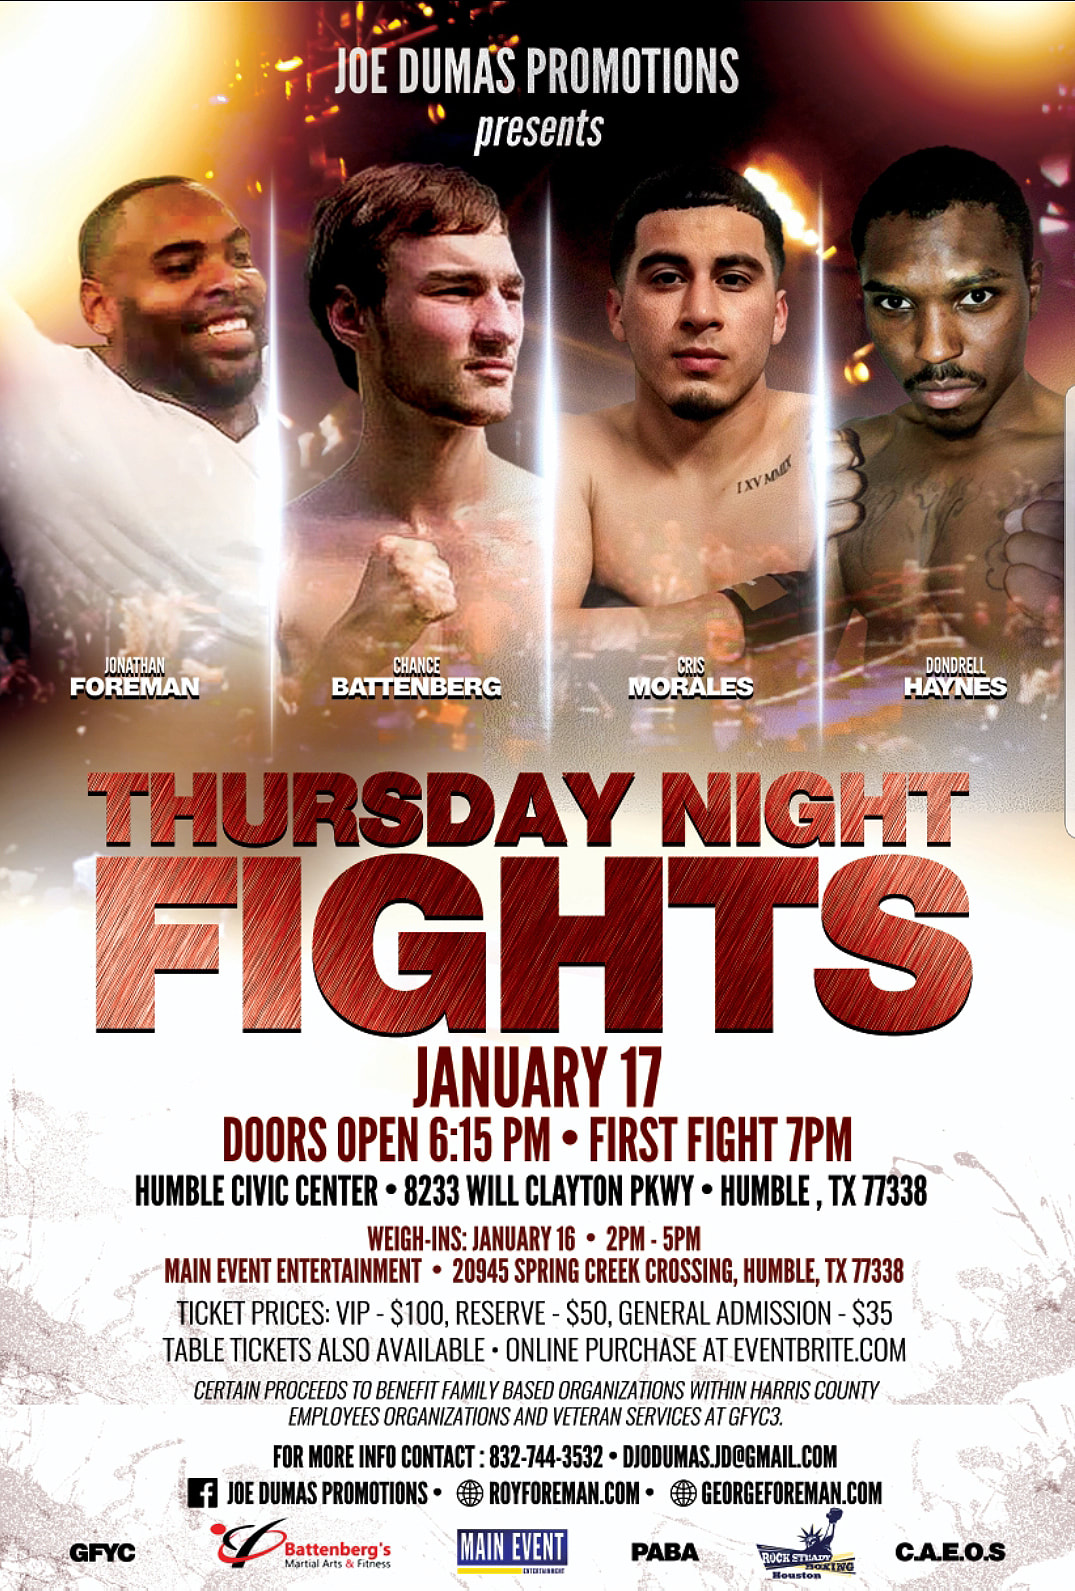 Thursday Night Fights January 17, 2019